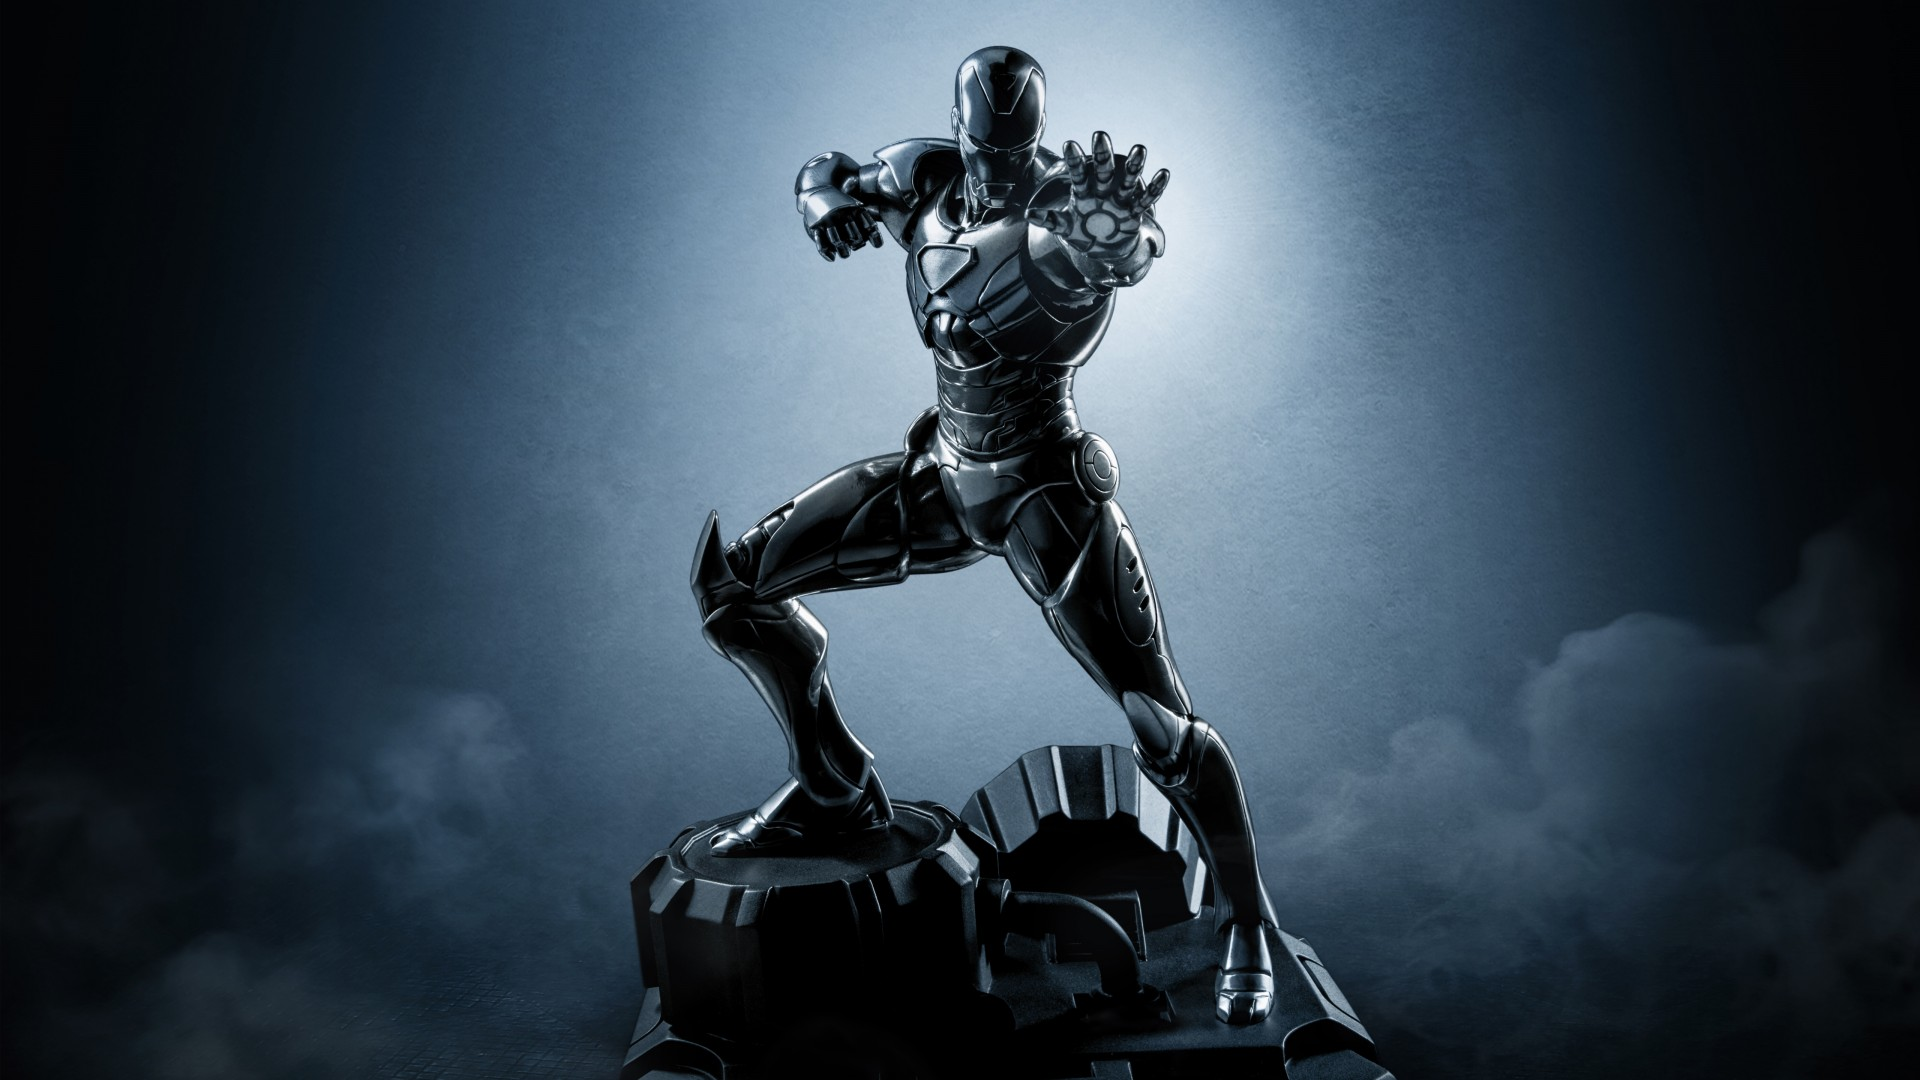 picture,iron man,name,moving picture,image,physique,number,movies,shape,military man,iron,figure,chains,humanity,man